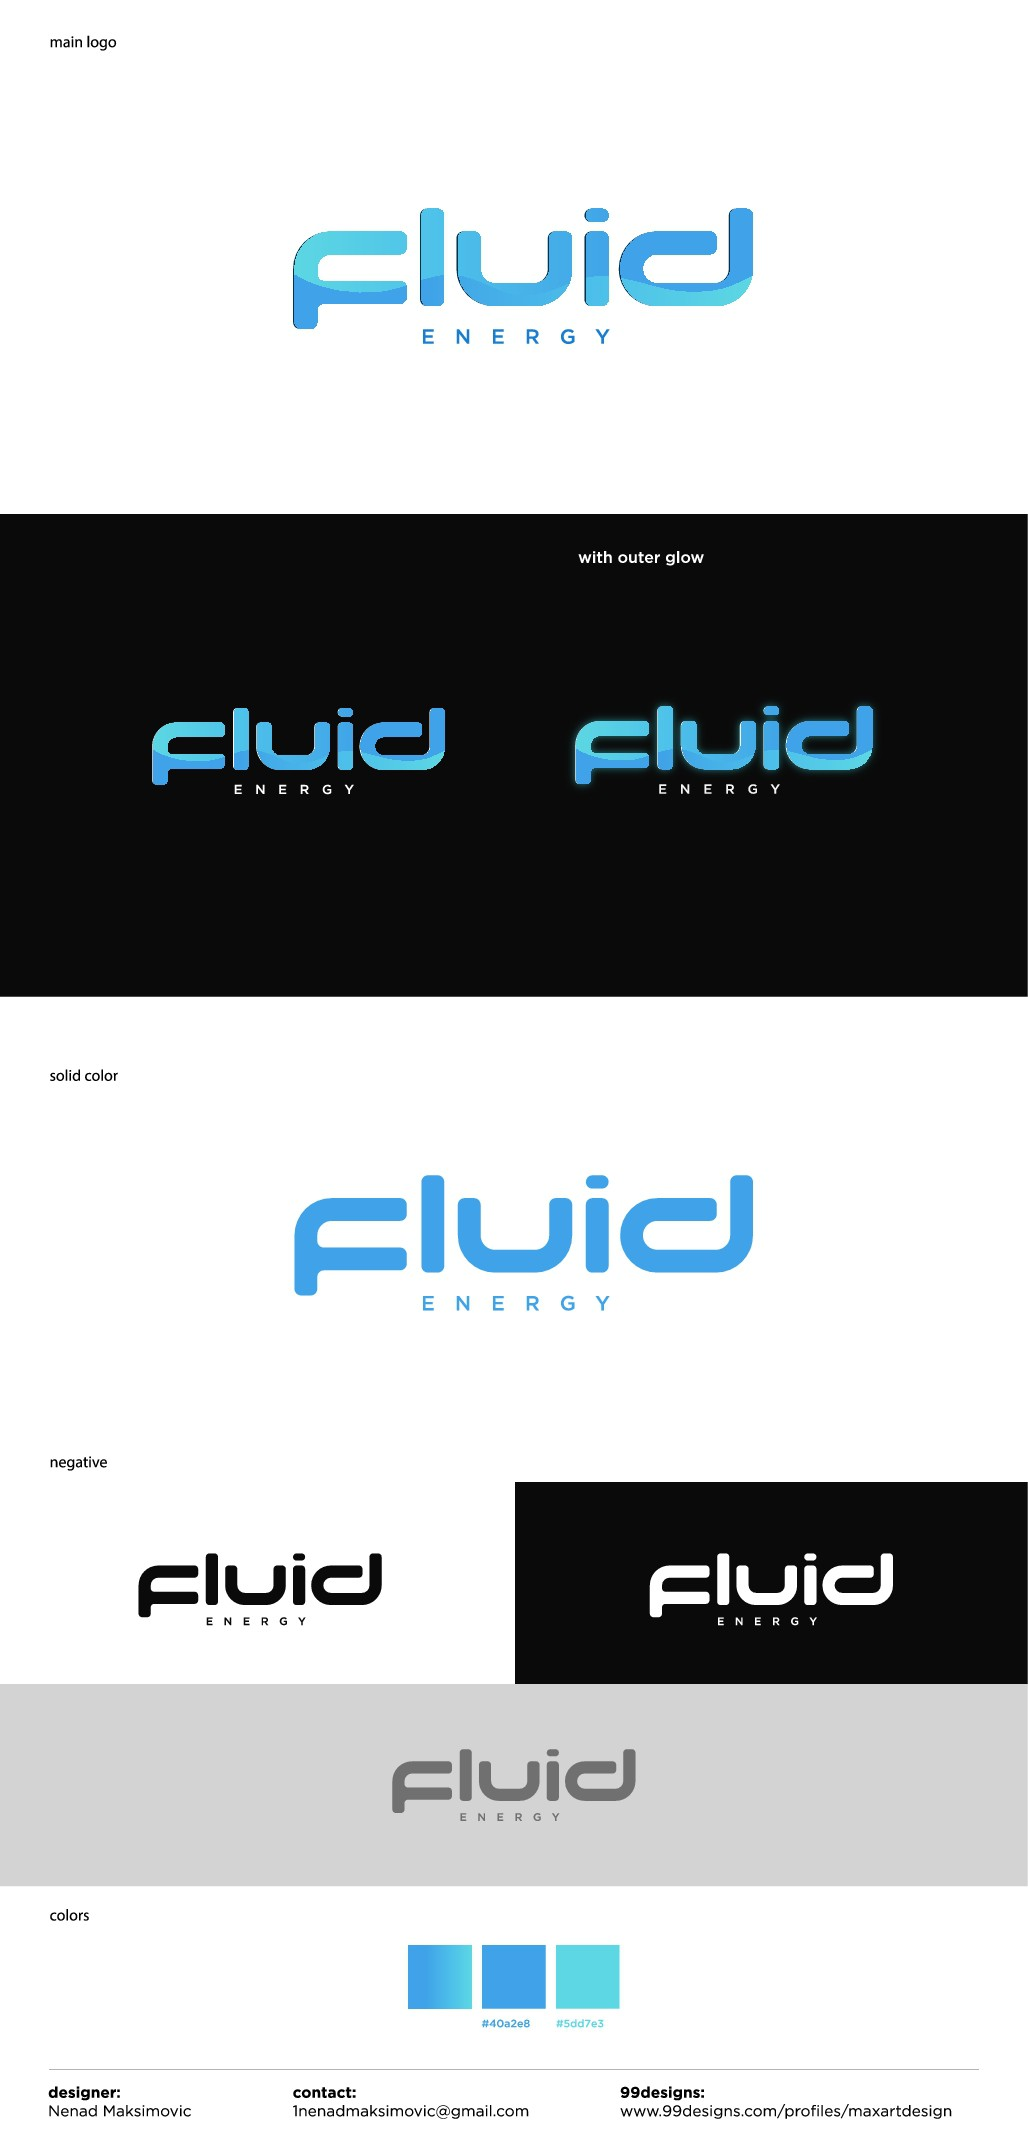 Fluid Energy needs a catchy logo for its energy drink brand!